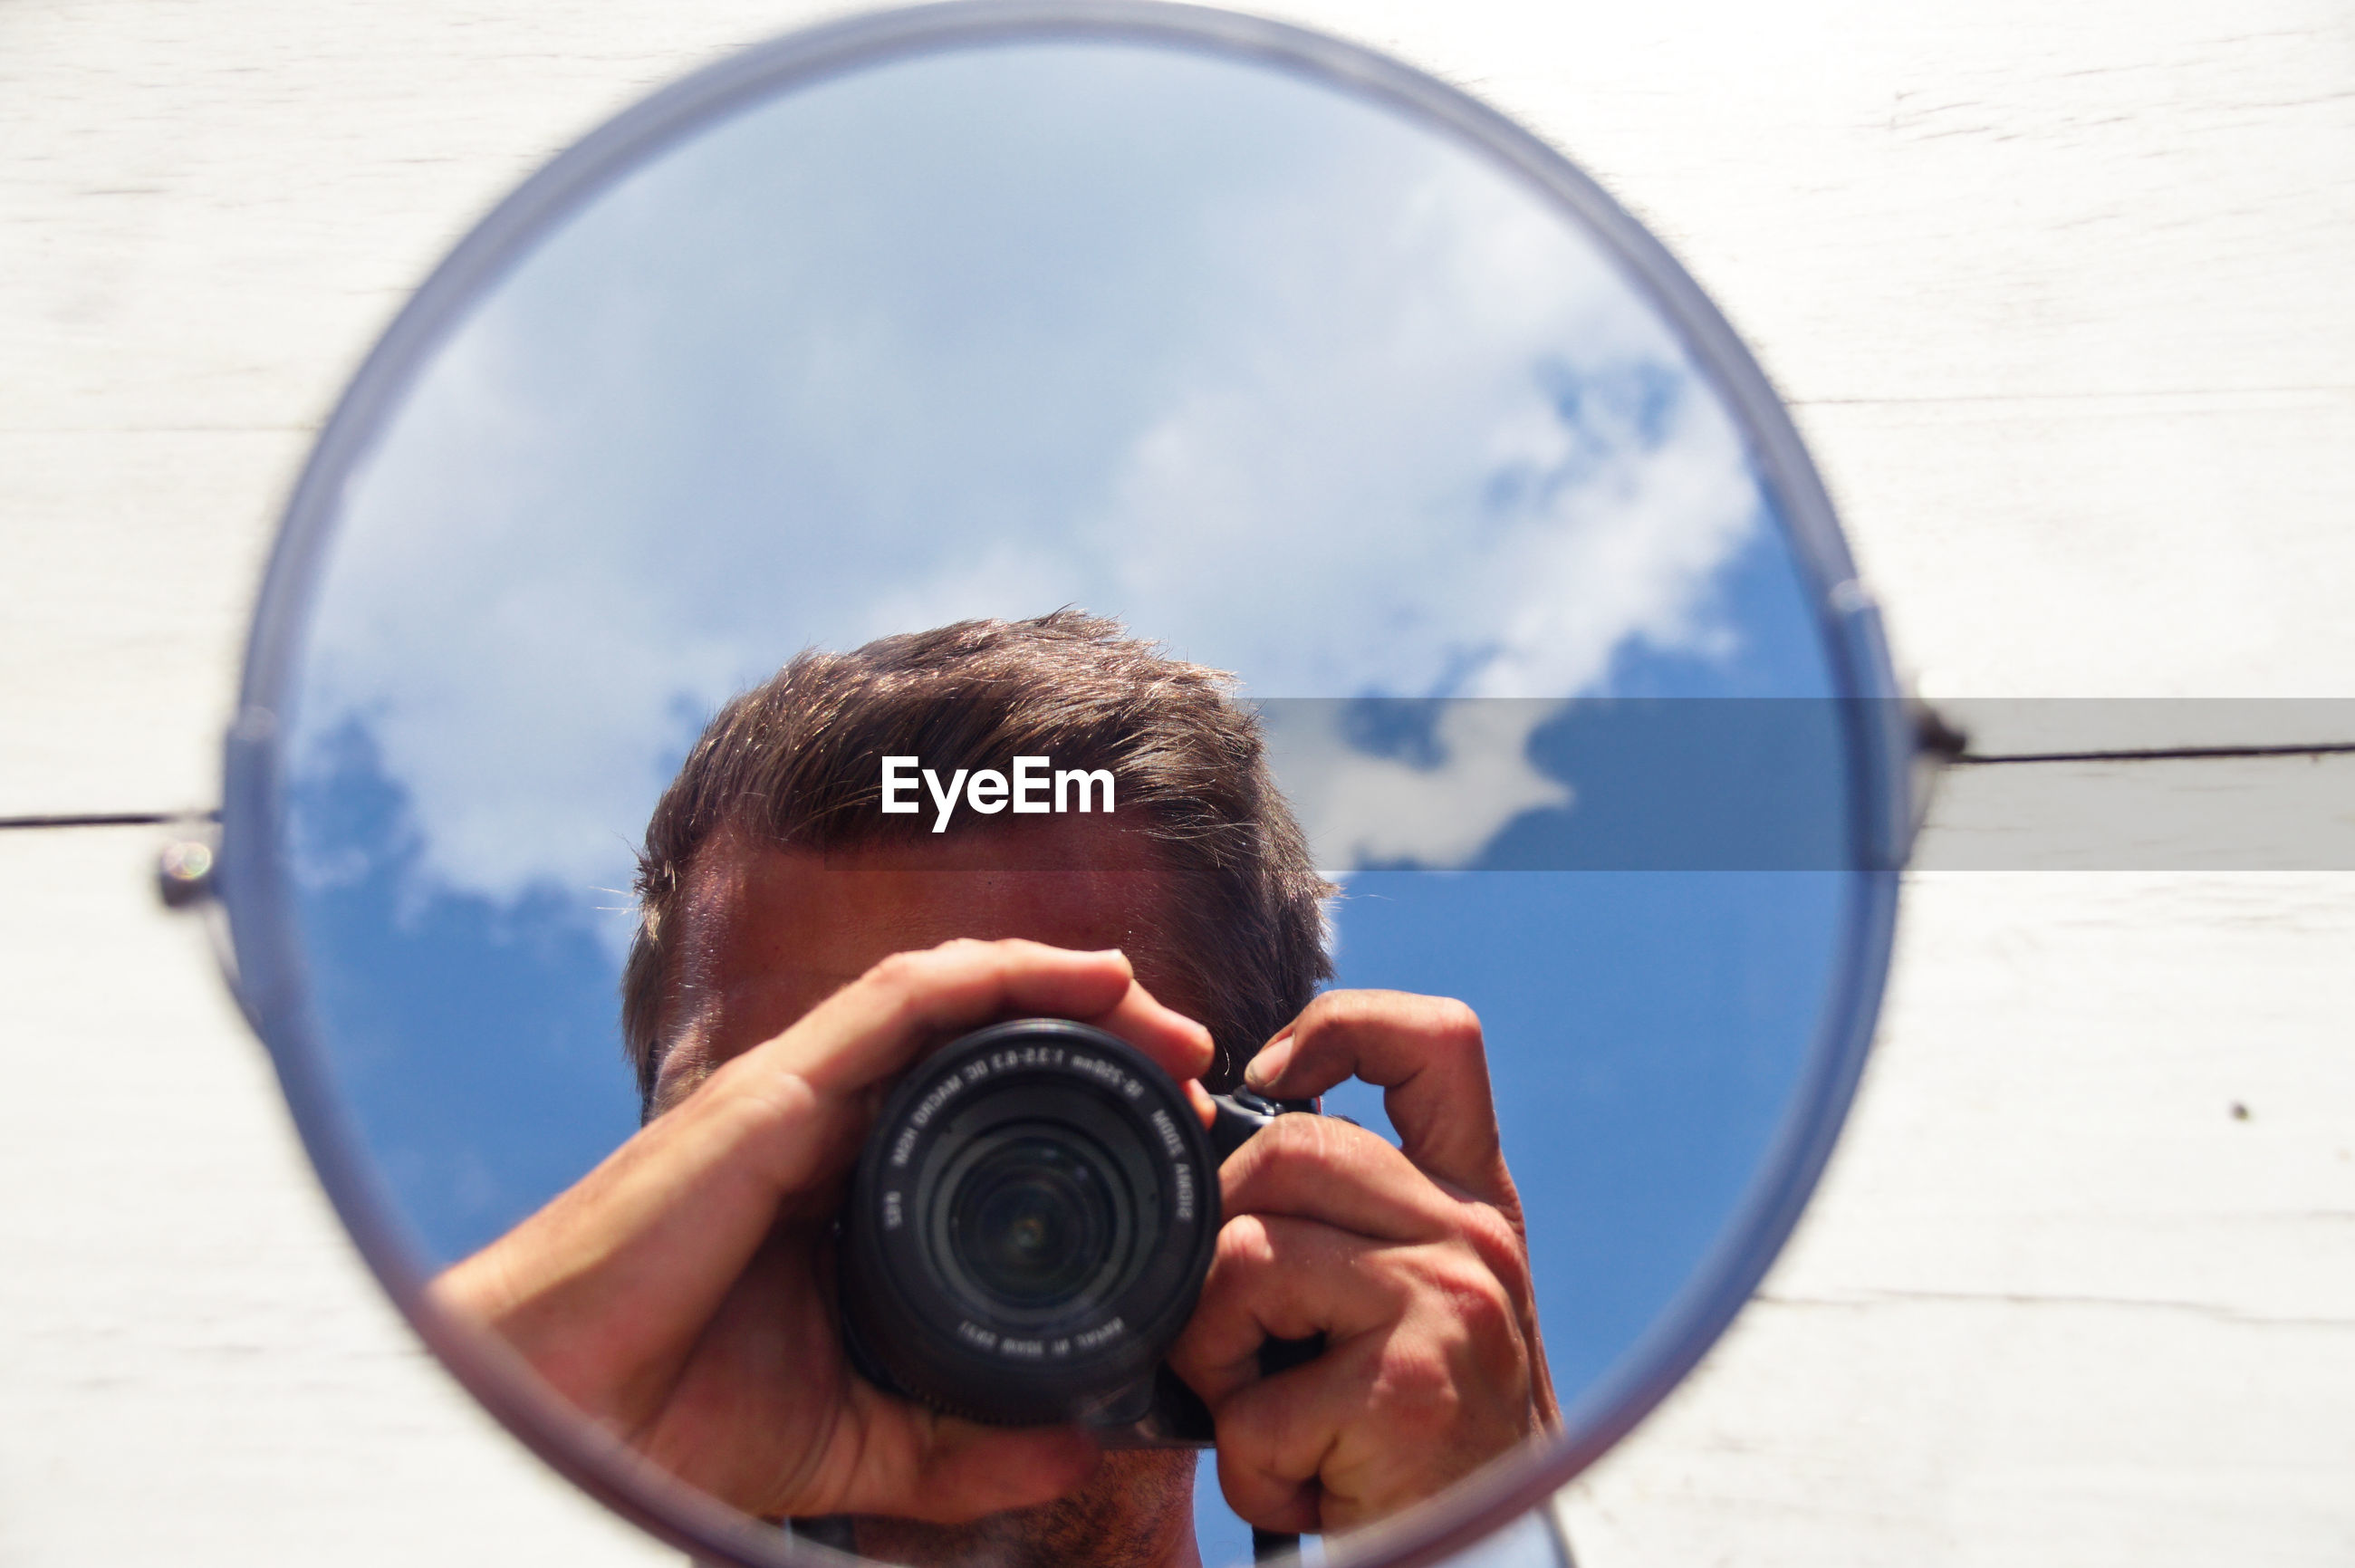 Reflection of man photographing through camera in mirror